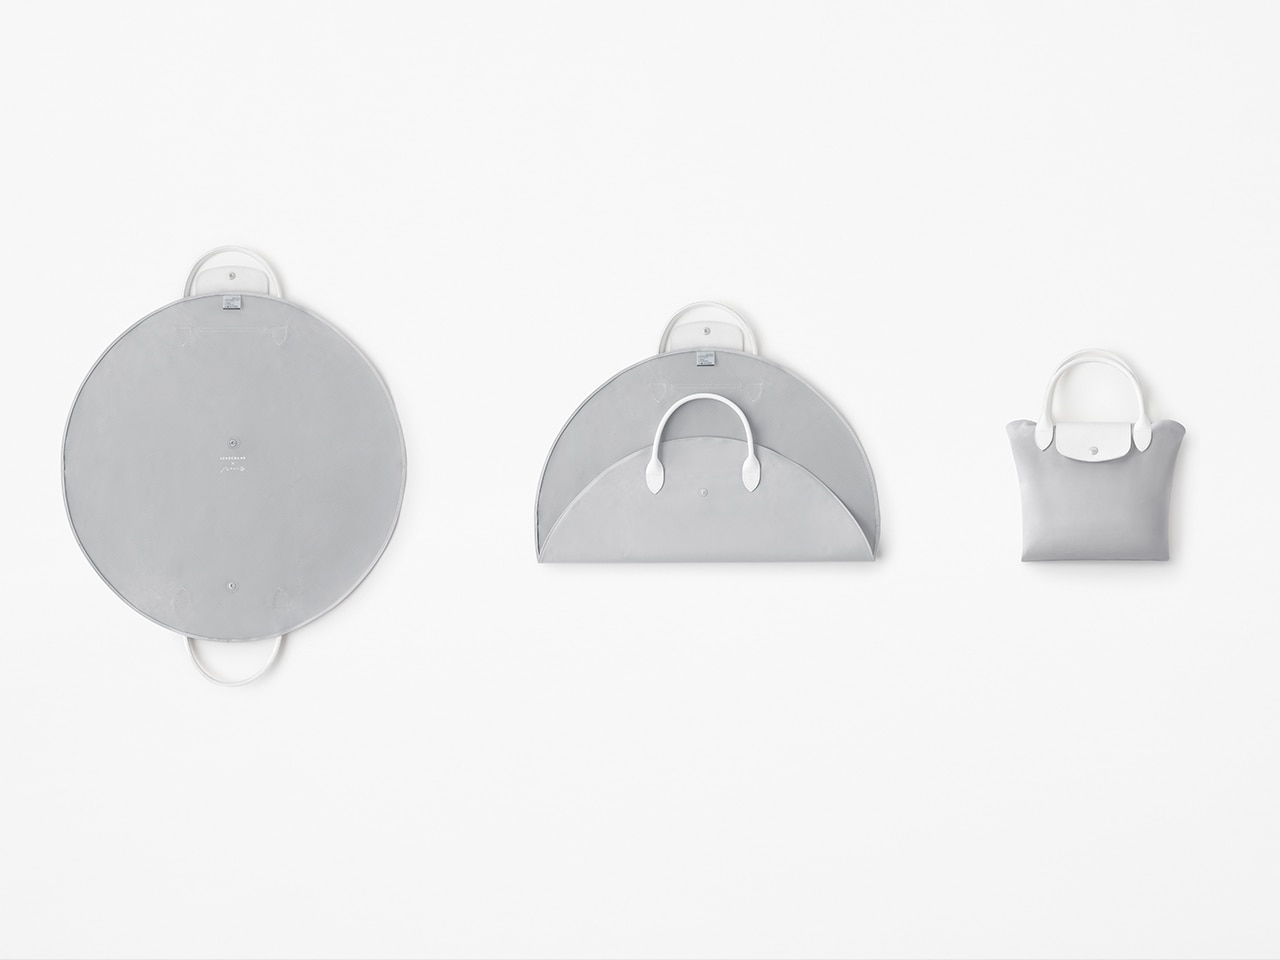 Longchamp's Limited Edition nendo Collection